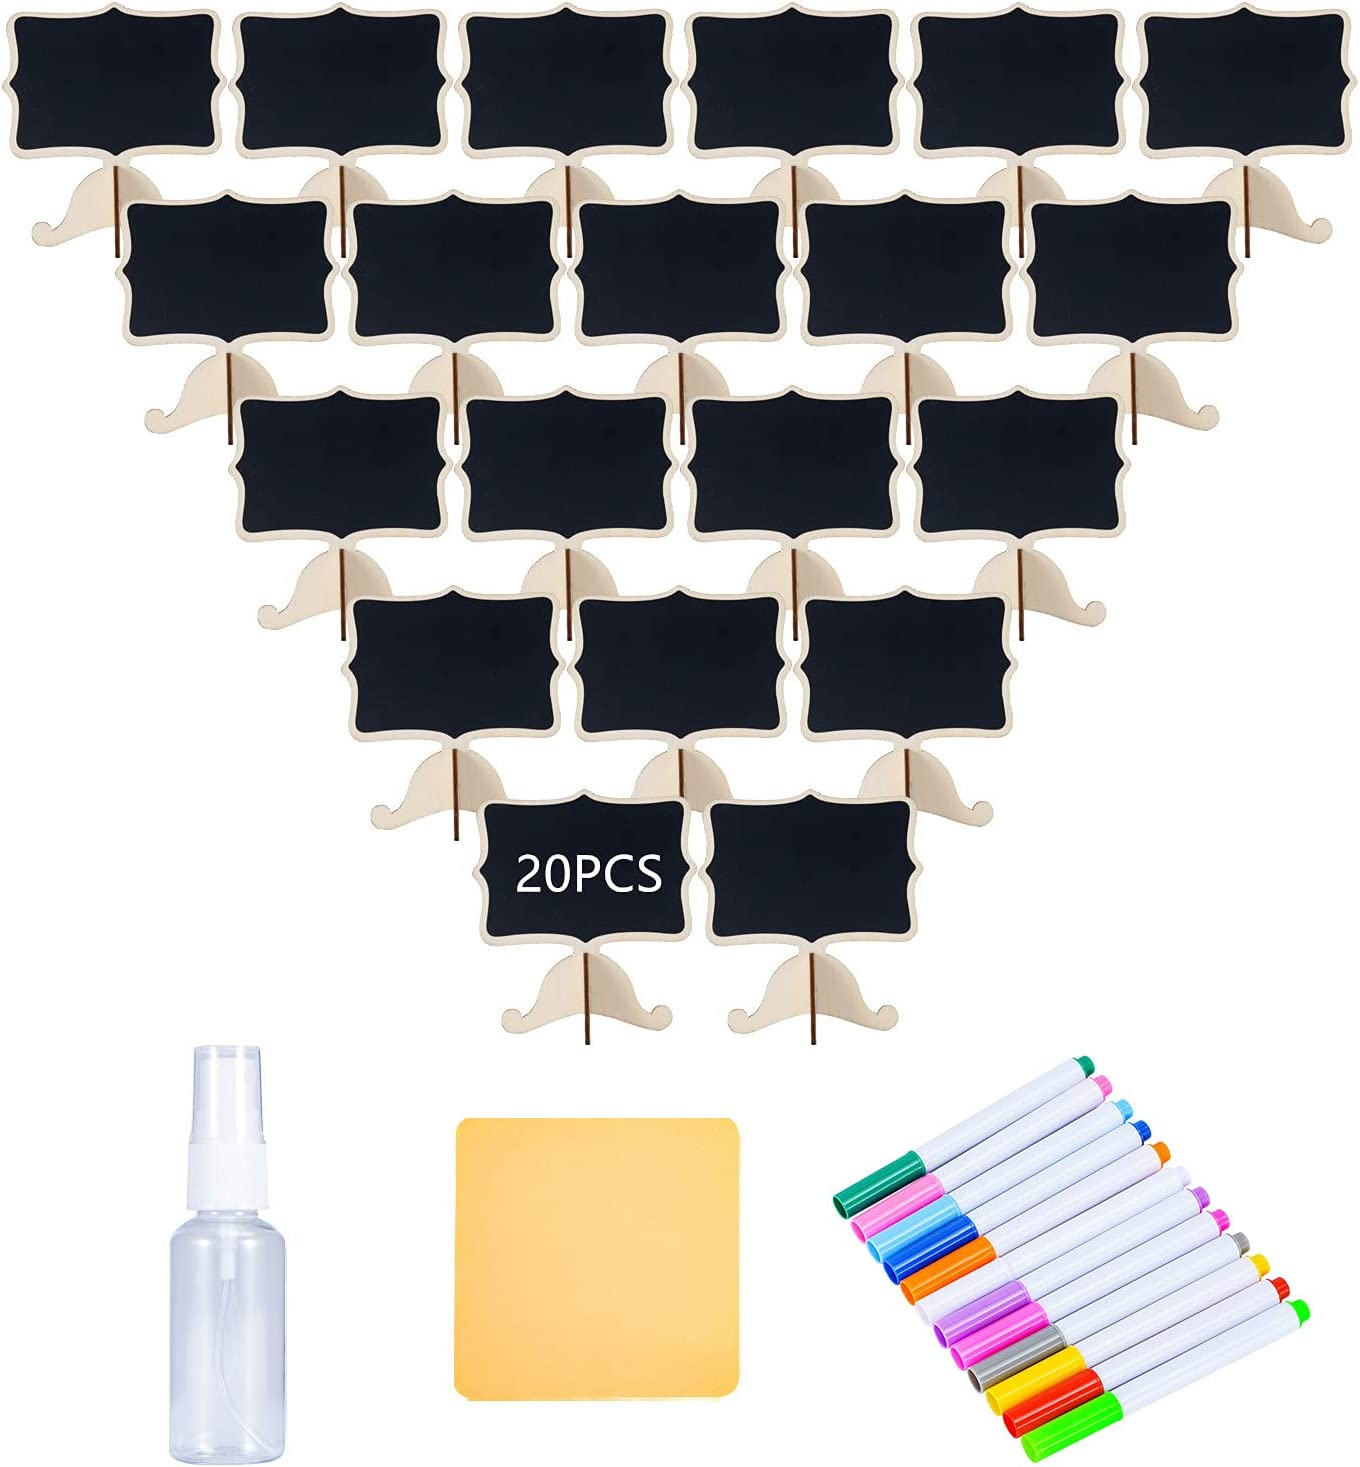 Reusable 20 Pcs Mini Chalkboard Signs with Easel Stand for Food Labels, Weddings, Birthday Parties, Message Board Signs and Event Decorations ,Include 12 Colors Water-Based Chalks